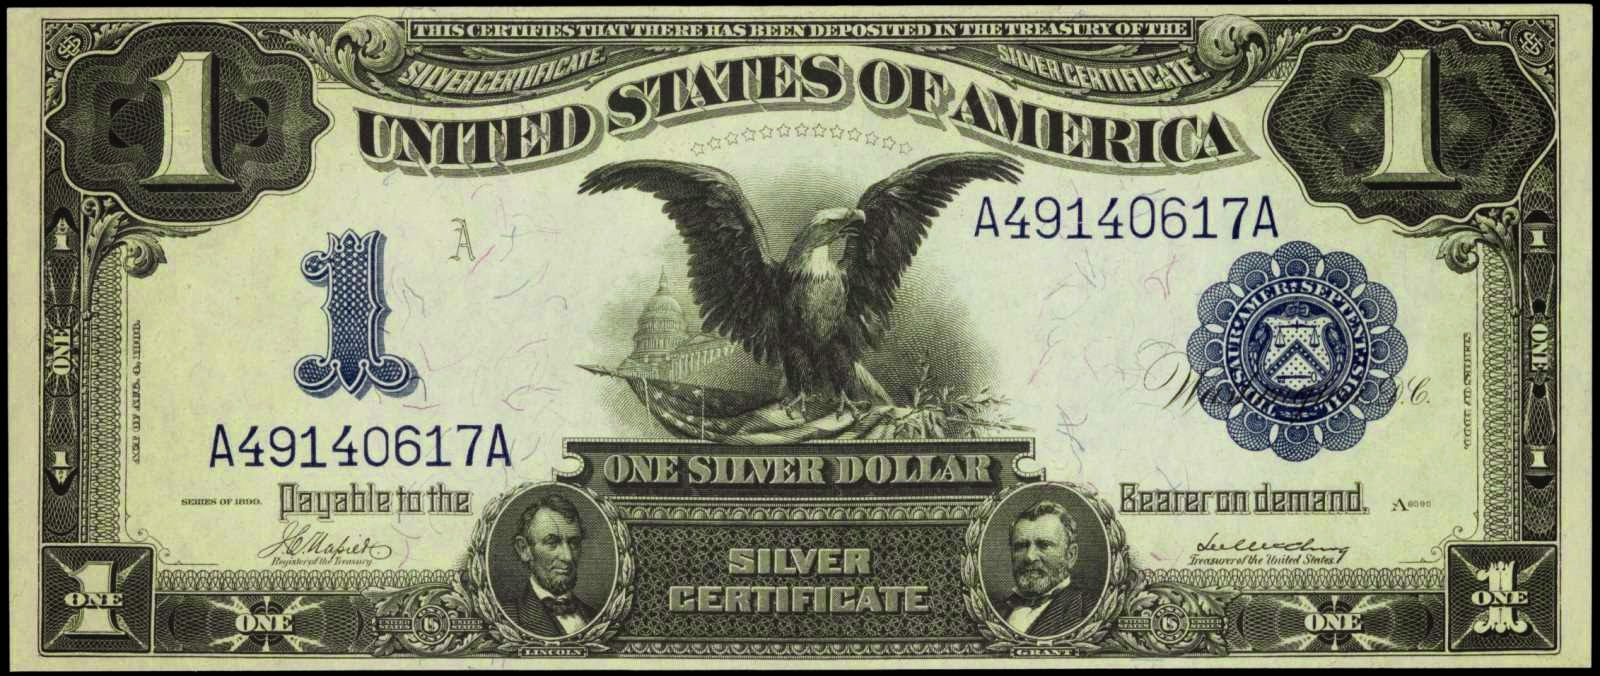 1899 One Dollar Silver Certificate Black Eagle|World Banknotes ...